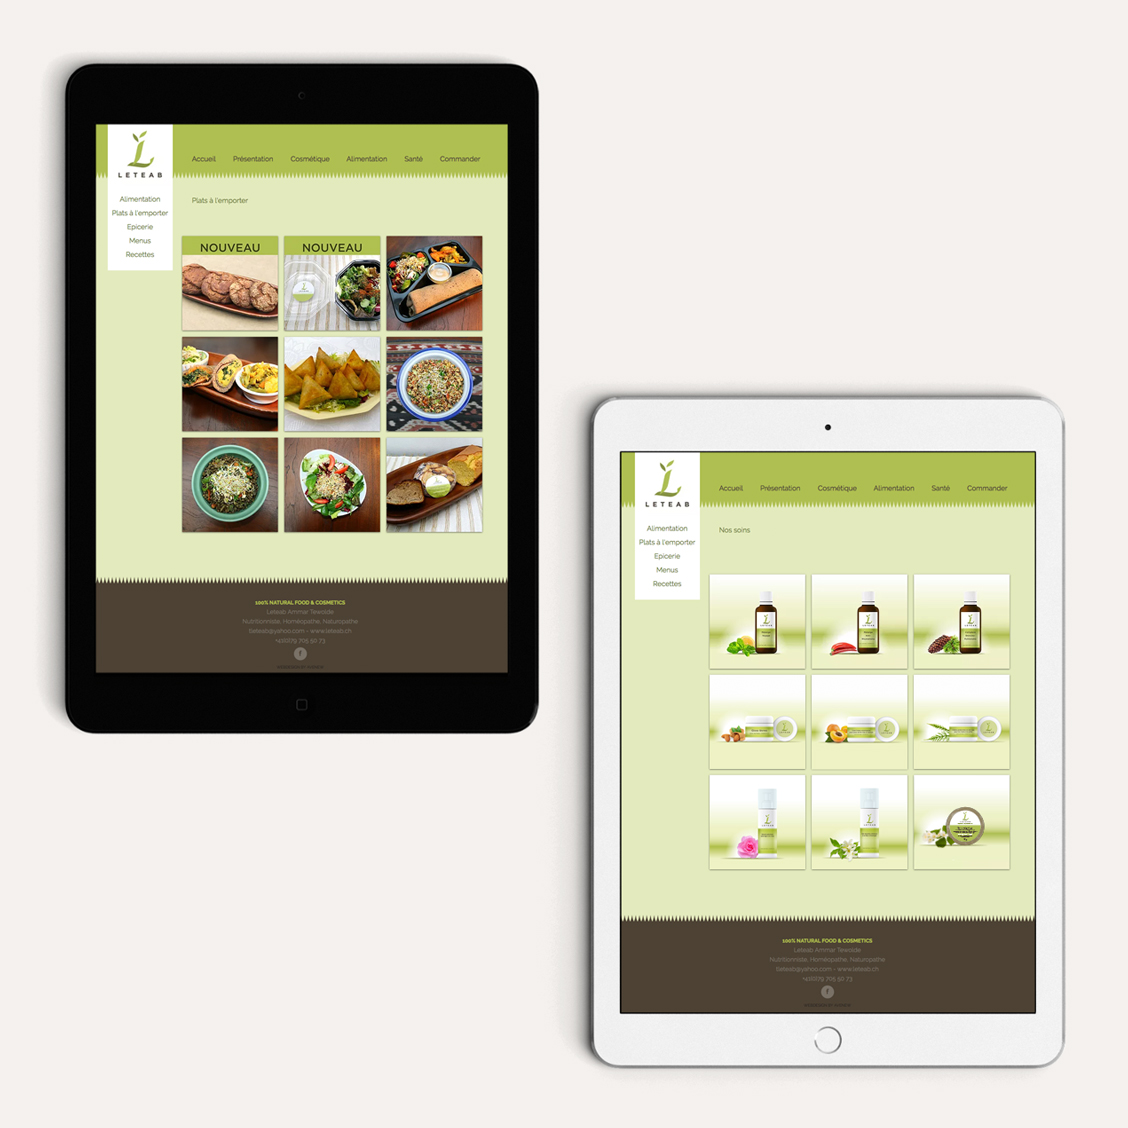 etche-food-leteab-site-internet-tablette